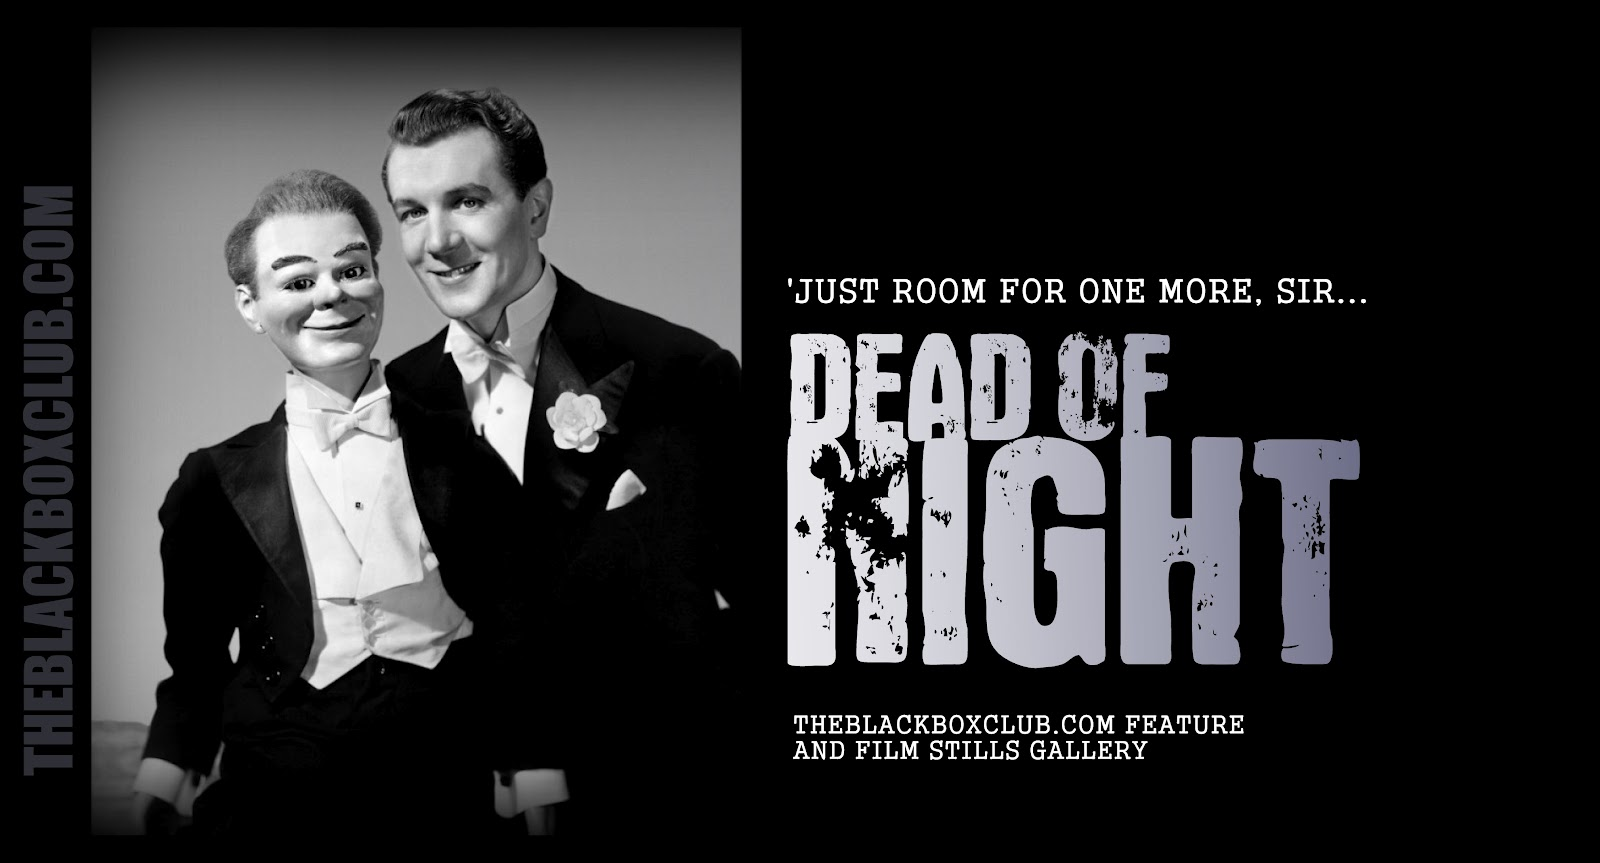 The Black Box Club: 'DEAD OF NIGHT' 'JUST ROOM FOR ONE MORE